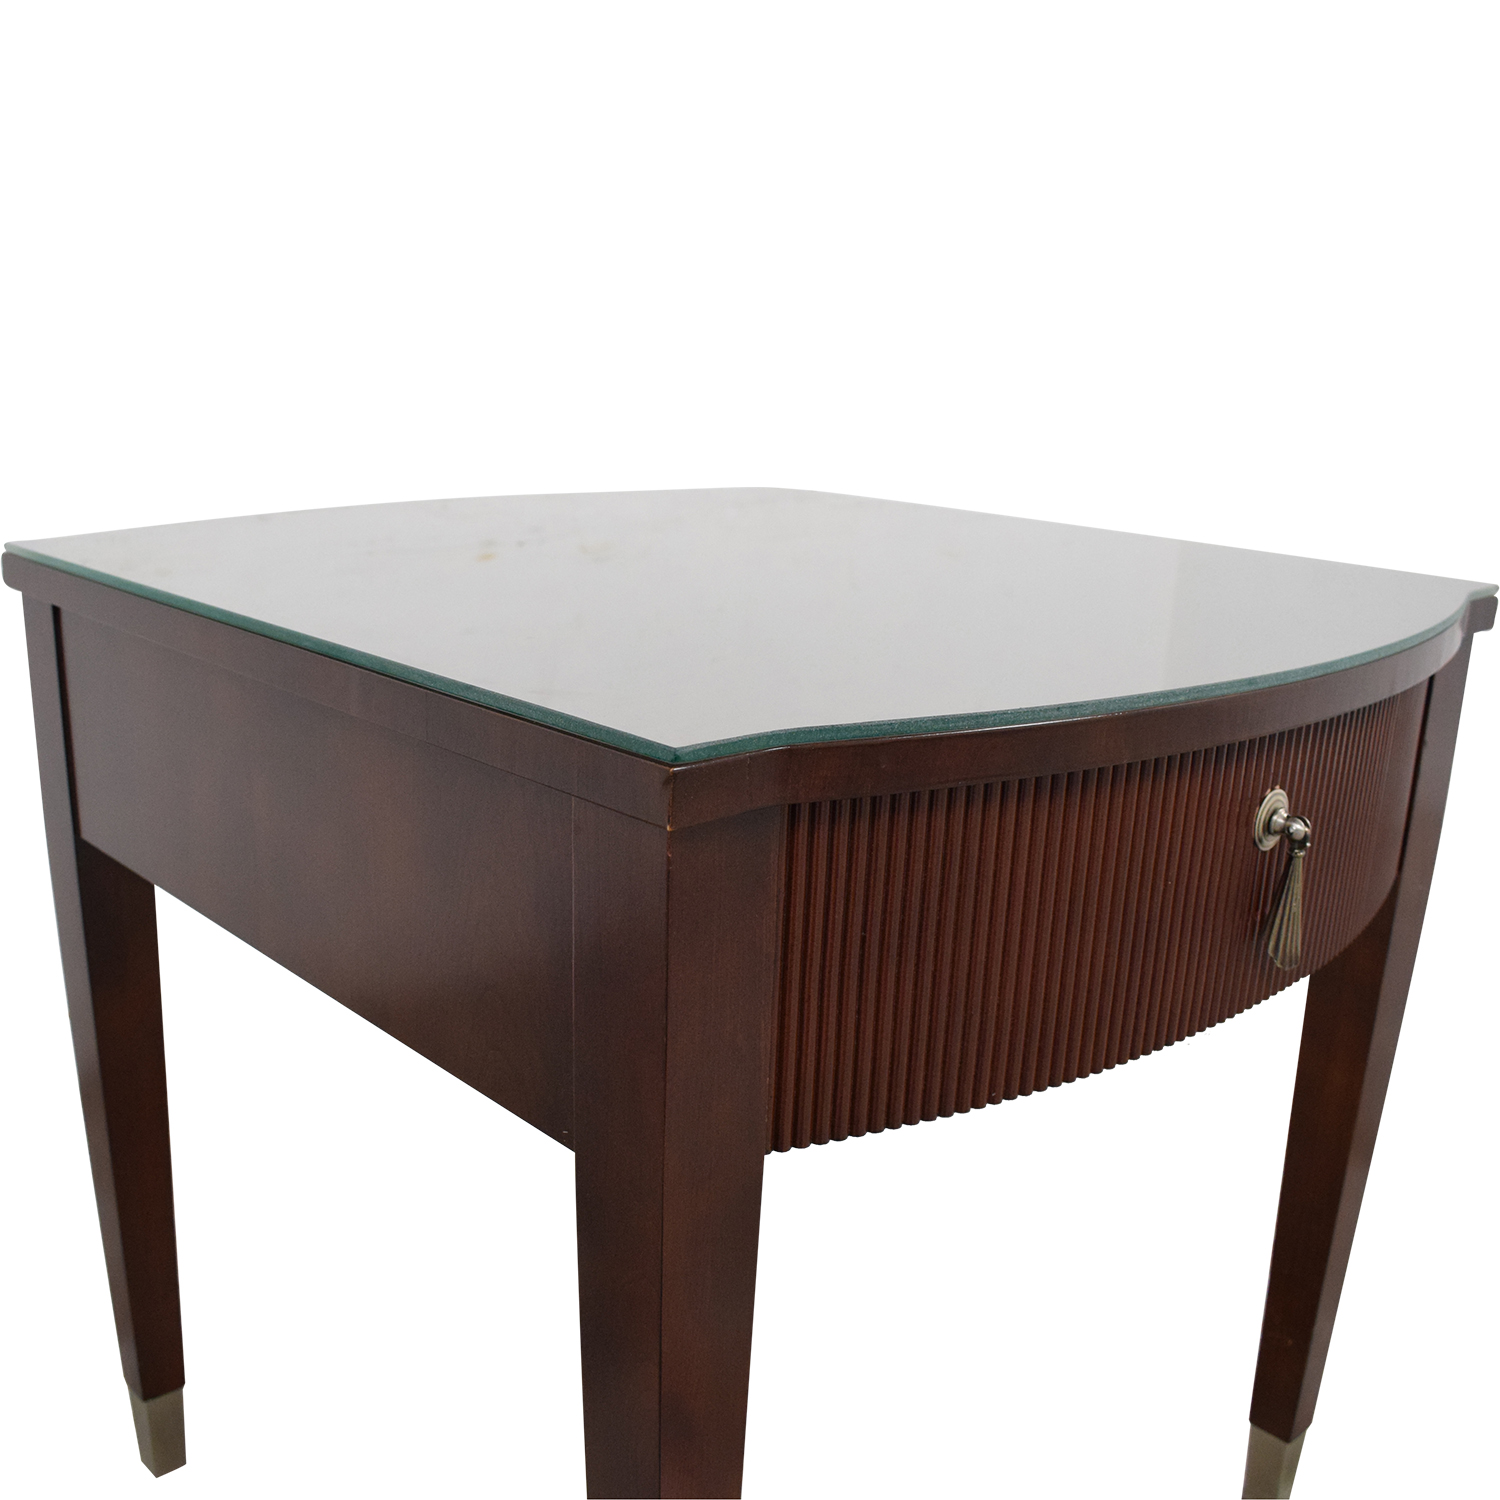 Ethan Allen Ethan Allen Avenue Side Table with Drawer nj